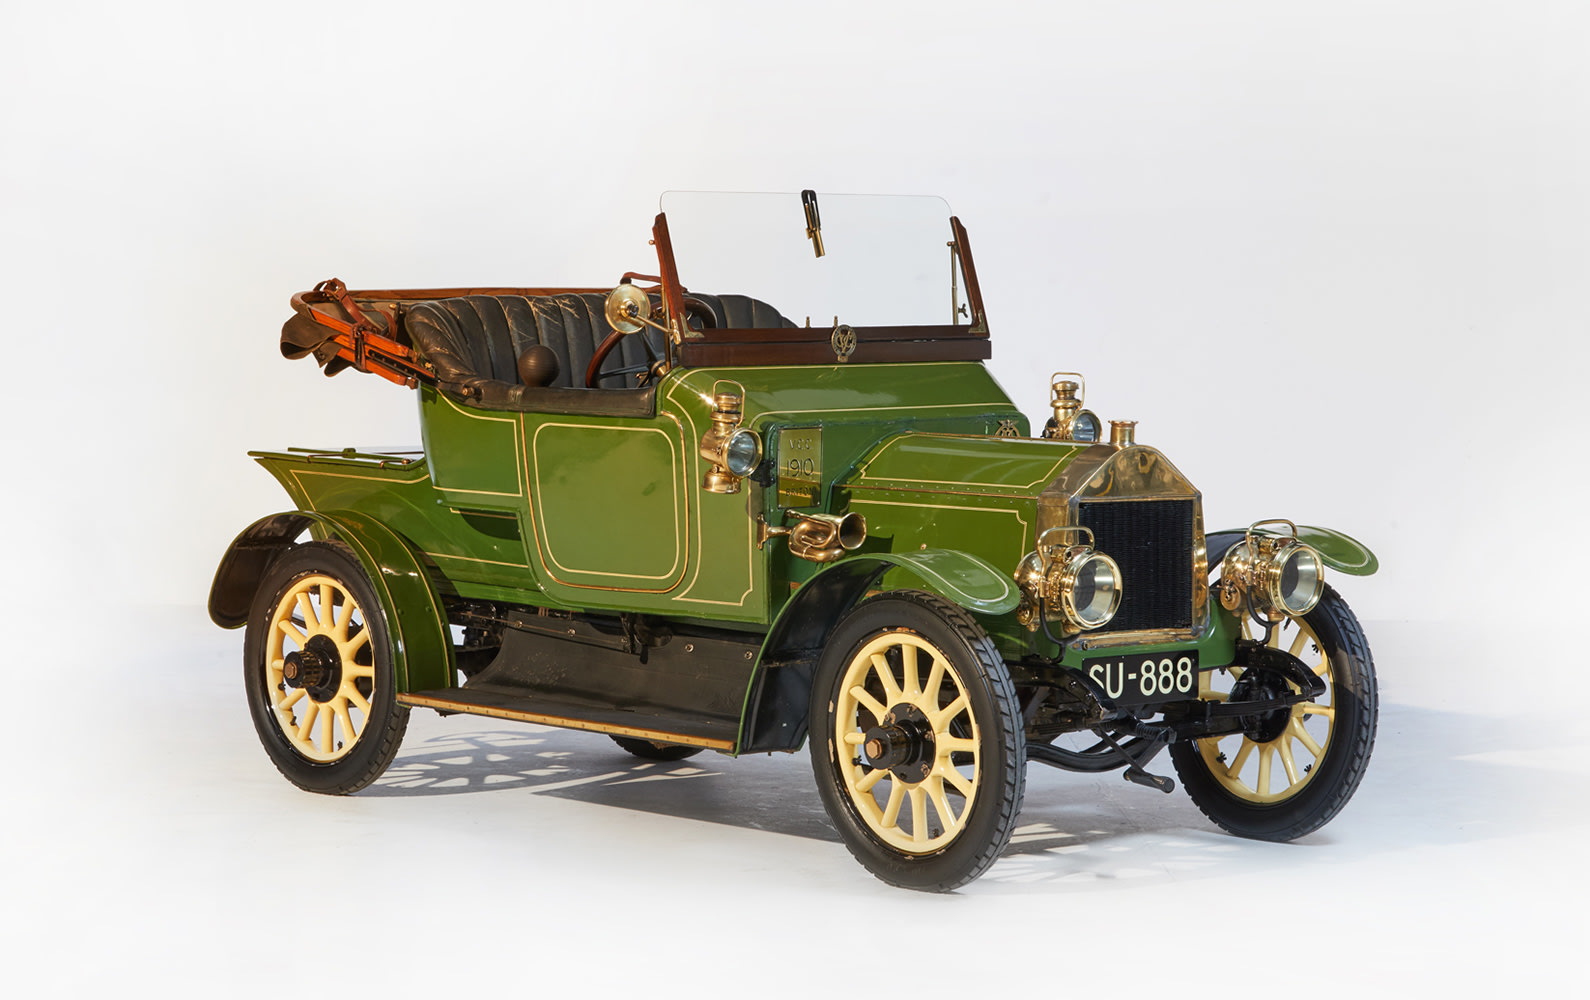 1910 Briton Two-Cylinder 10/12 HP